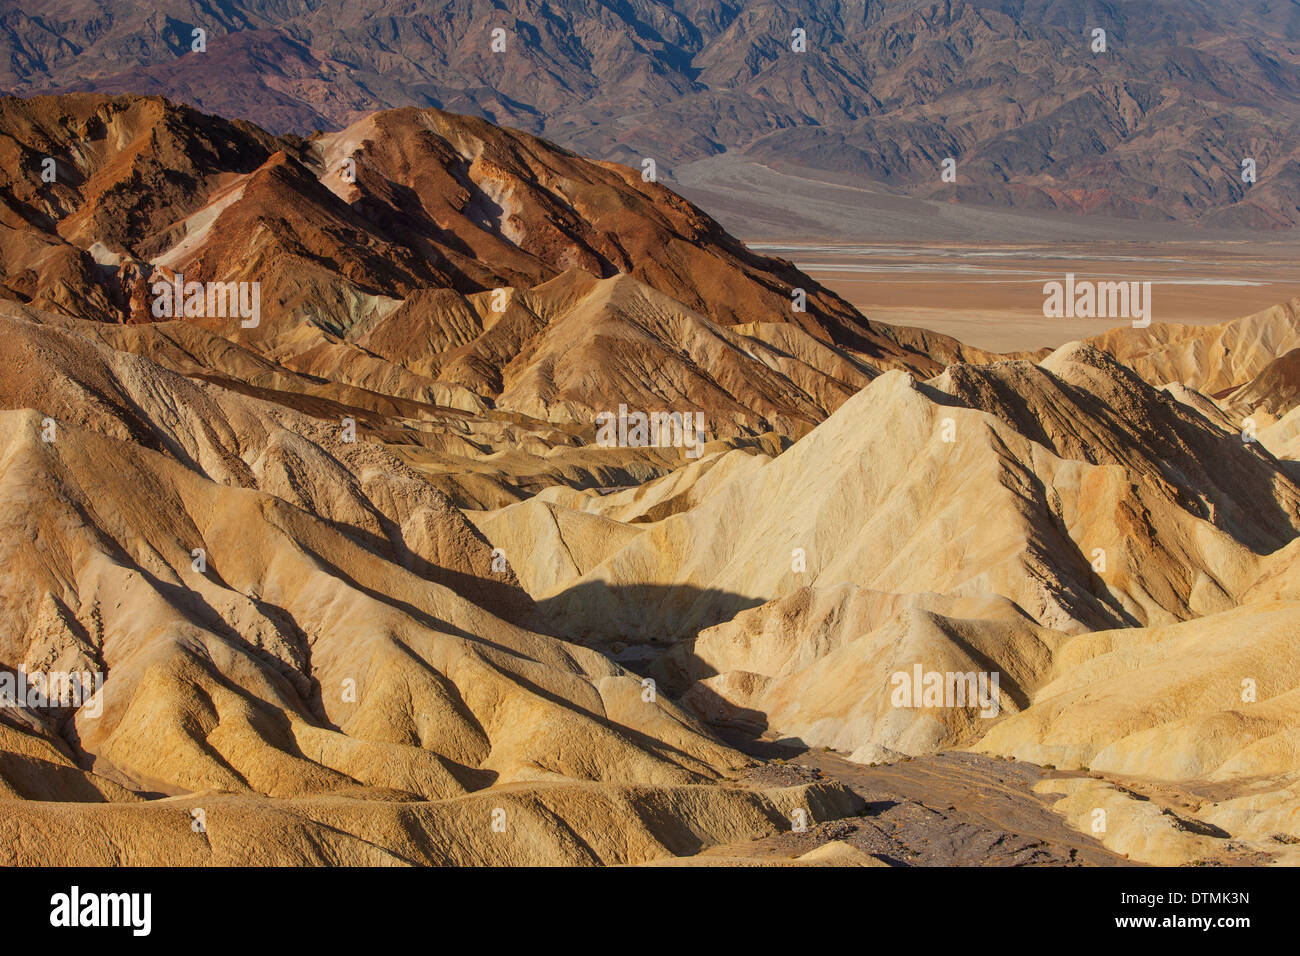 Manifold near Zabriski Point, Death Valley National Park, California USA Stock Photo